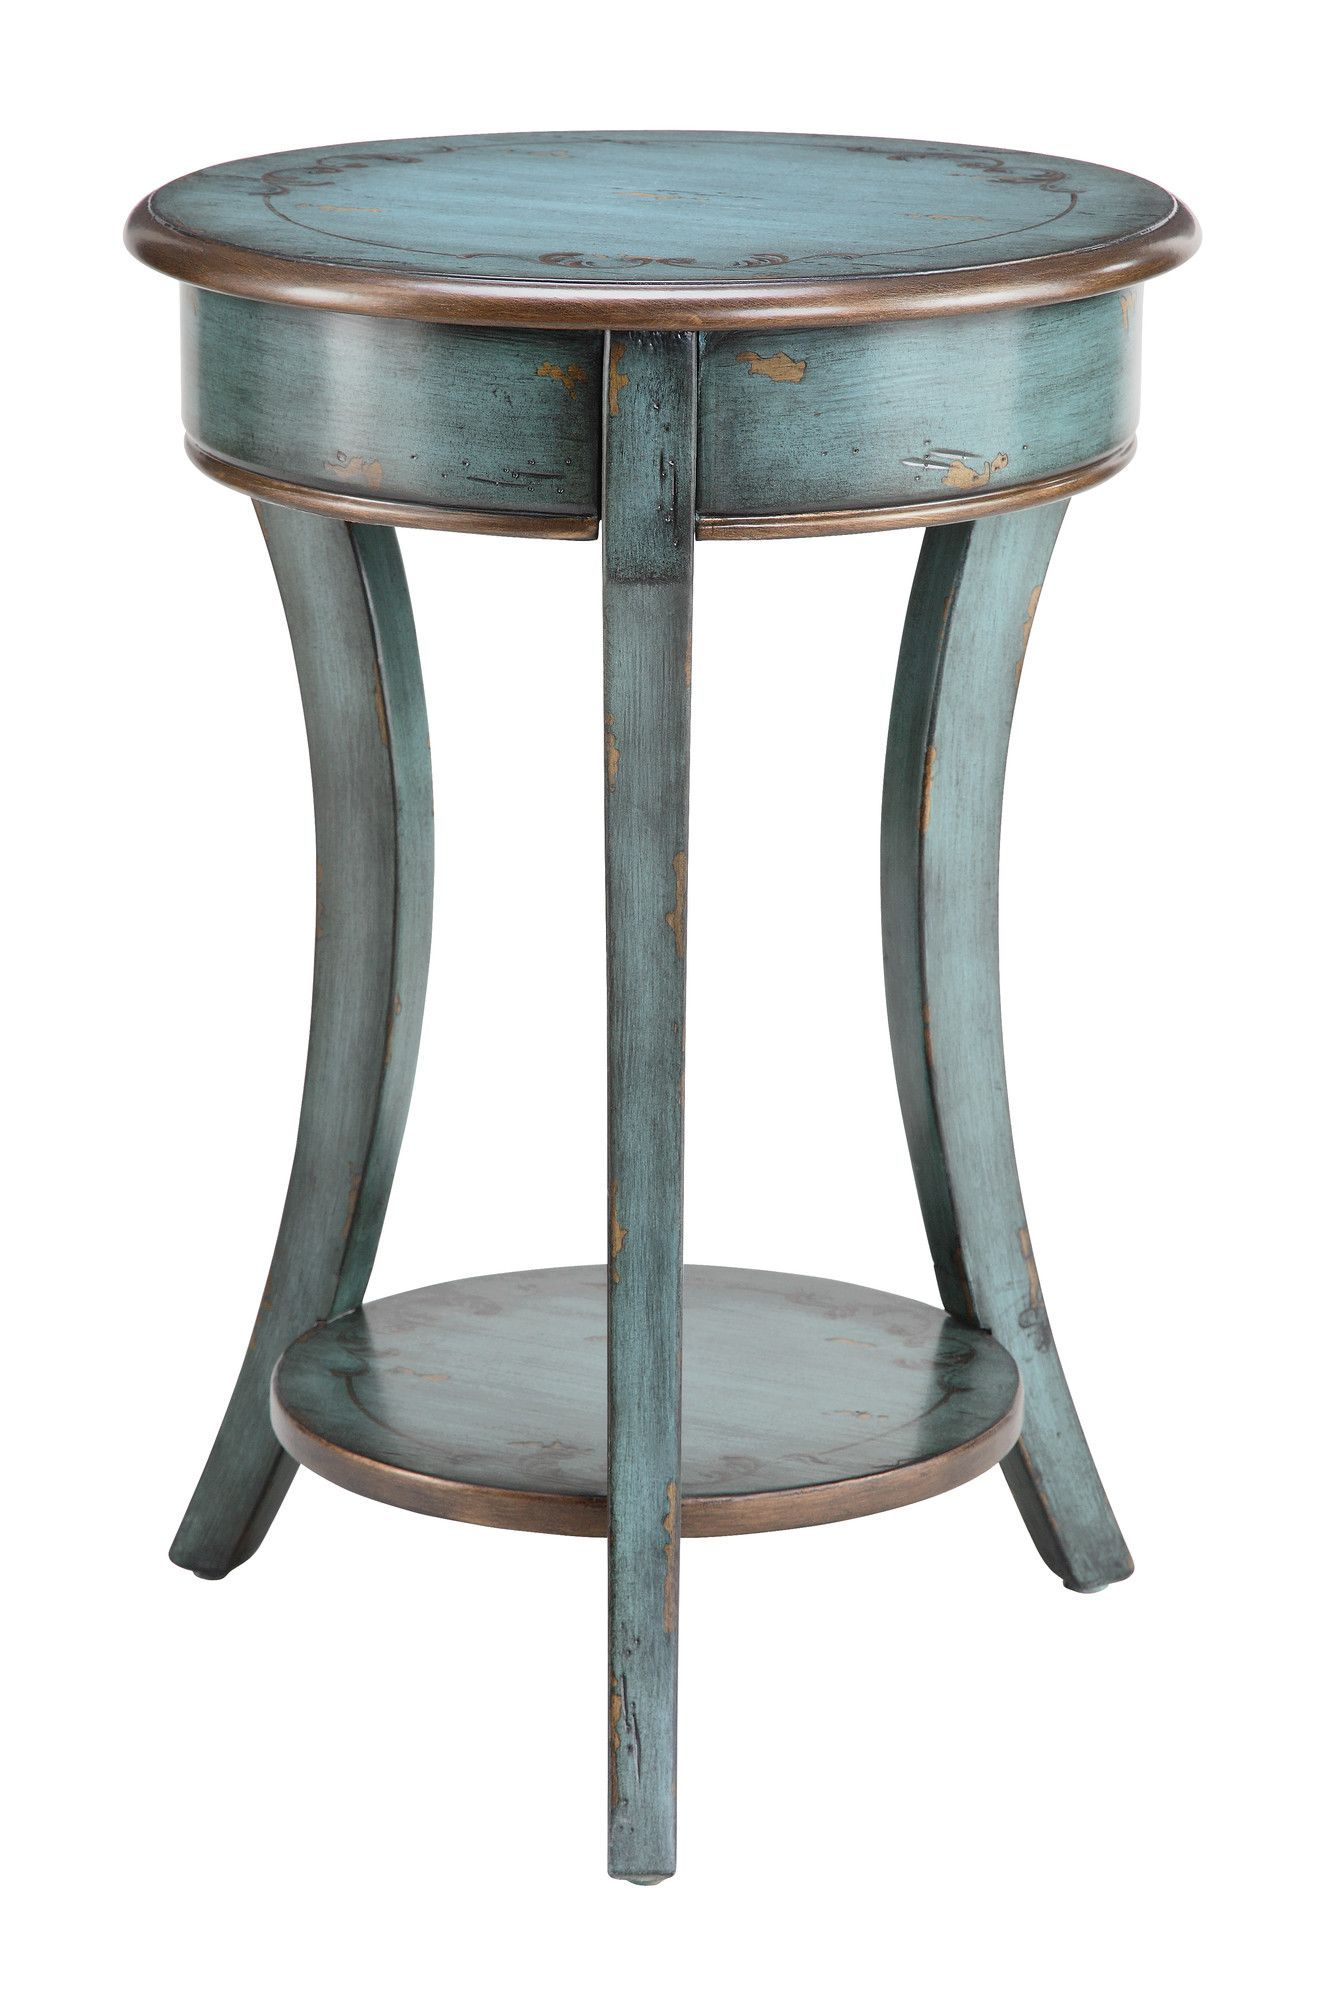 stein world painted treasures end table bronzed and distressed paint round job kmart outdoor liberty entertainment console homesense wicker baskets leather furniture montreal